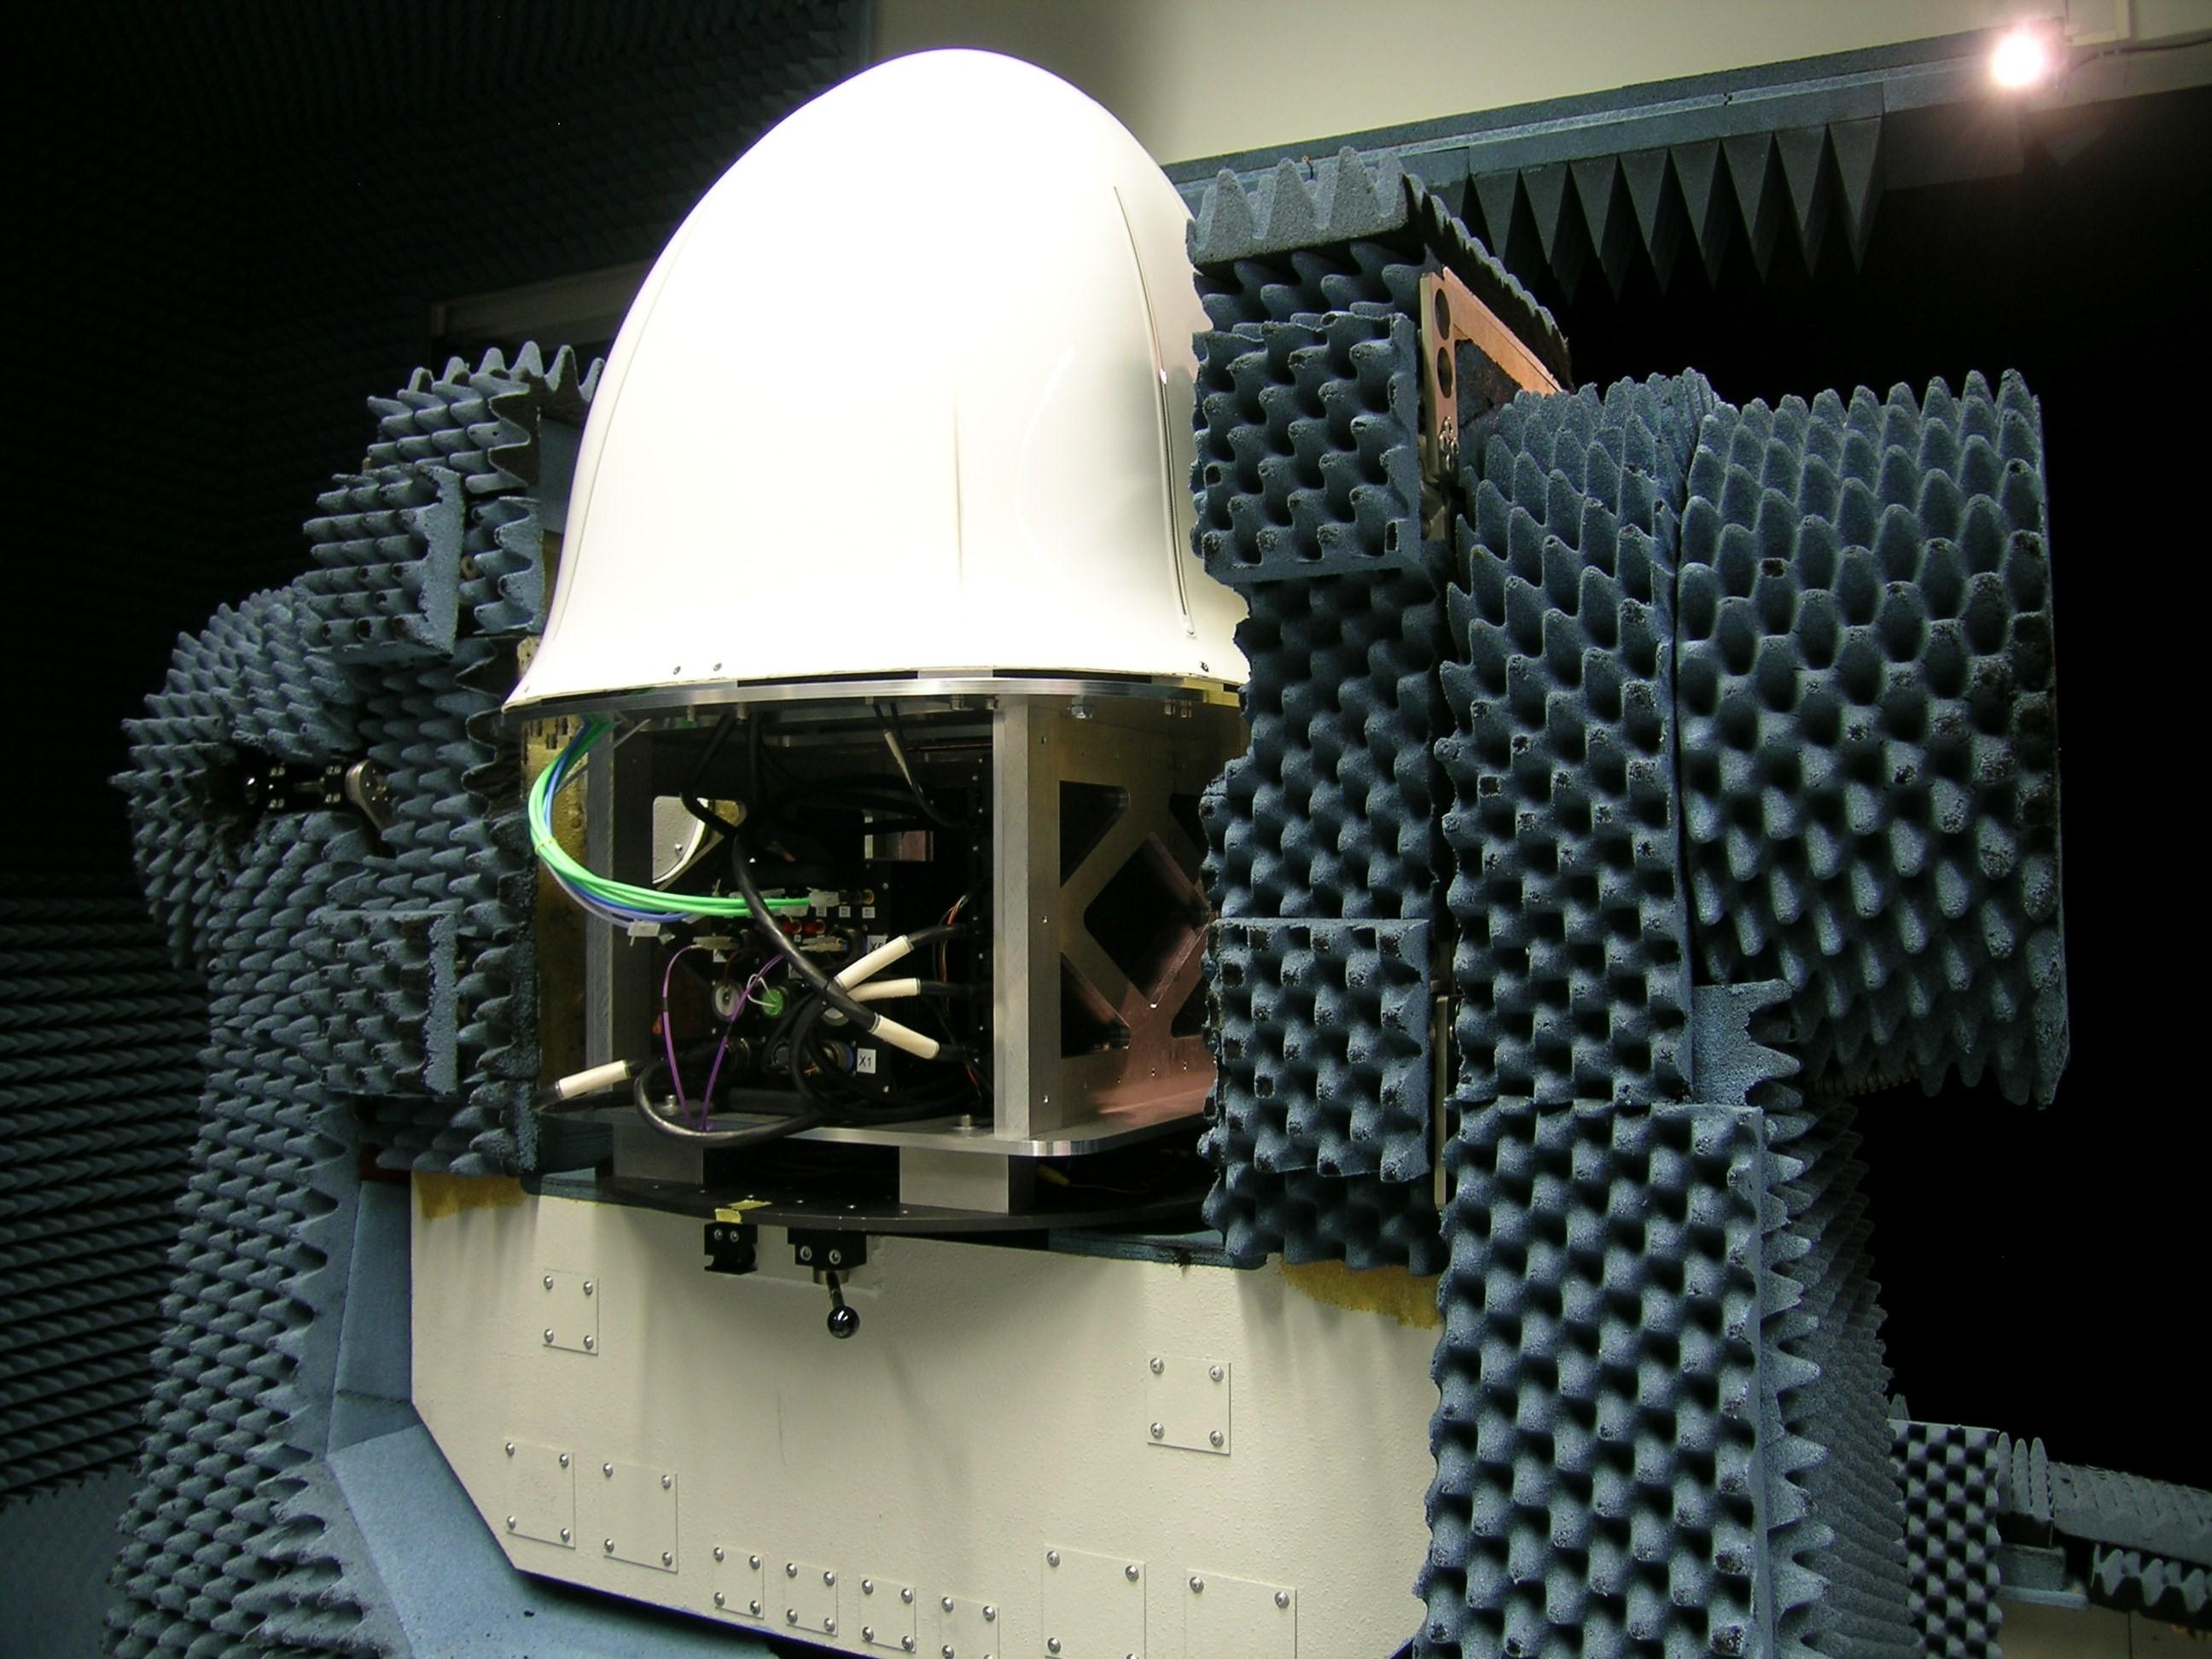 HENSOLDT's collision-warning radar, with a newly developed radome (aircraft nose), in the test chamber.